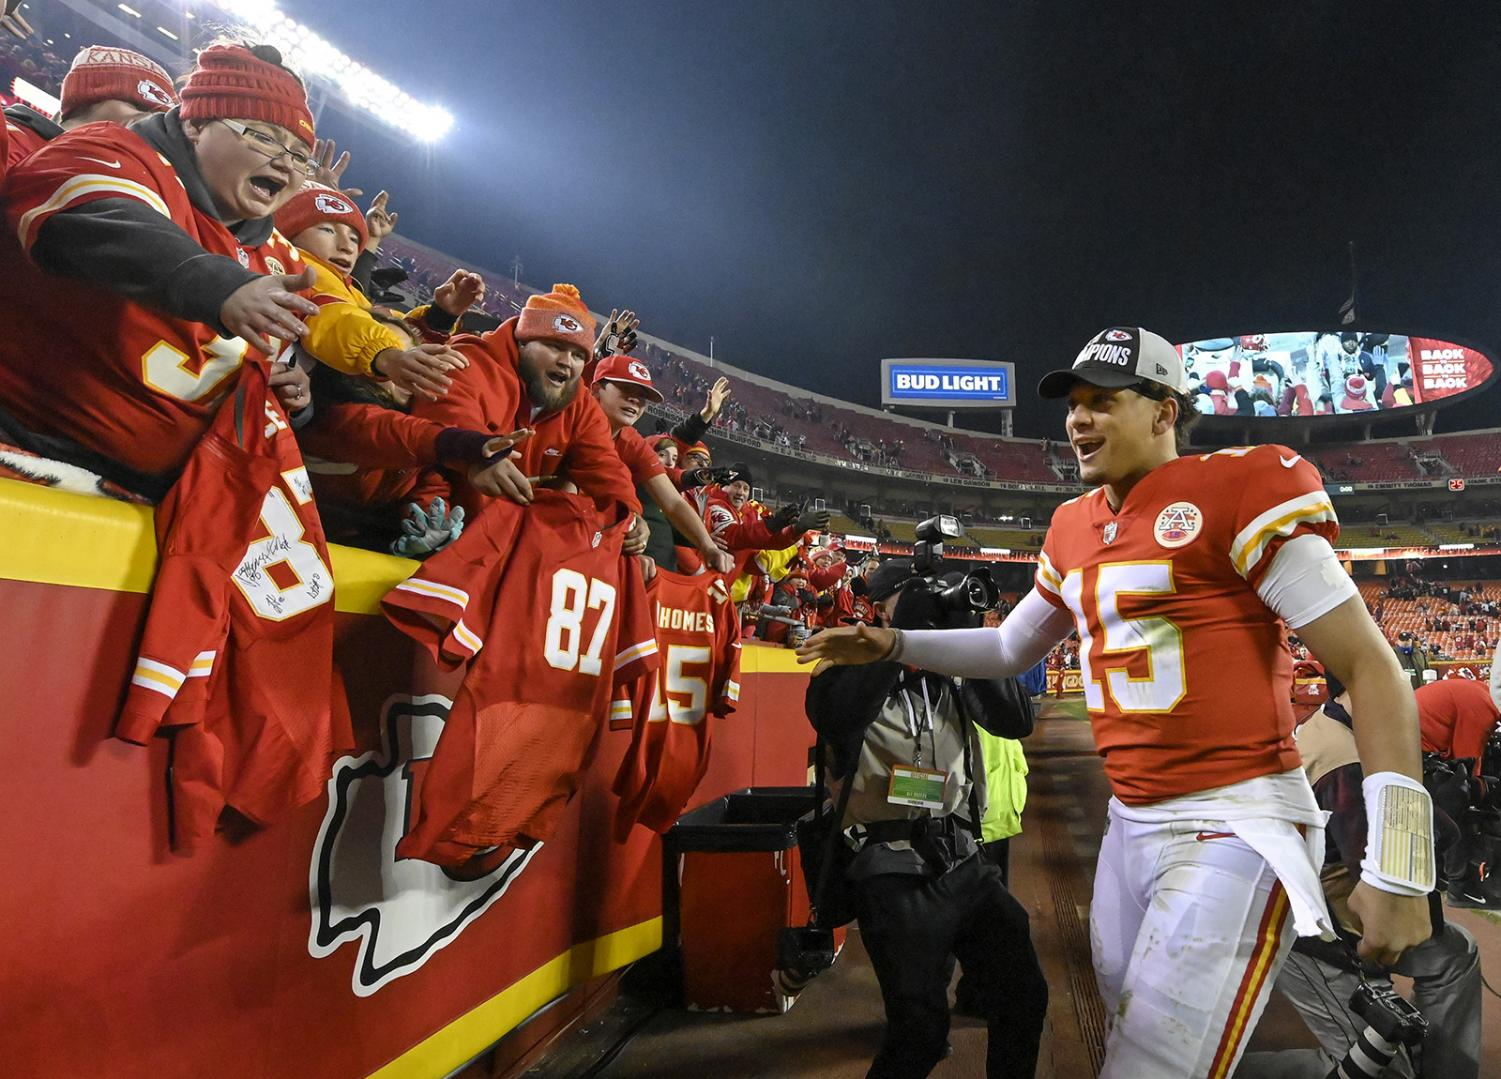 Kansas City Chiefs quarterback Patrick Mahomes greets fans as he heads to the locker room after the Chiefs defeated the Oakland Raiders 35-3 on Sunday, Dec. 30, 2018 at Arrowhead Stadium in Kansas City, Mo.